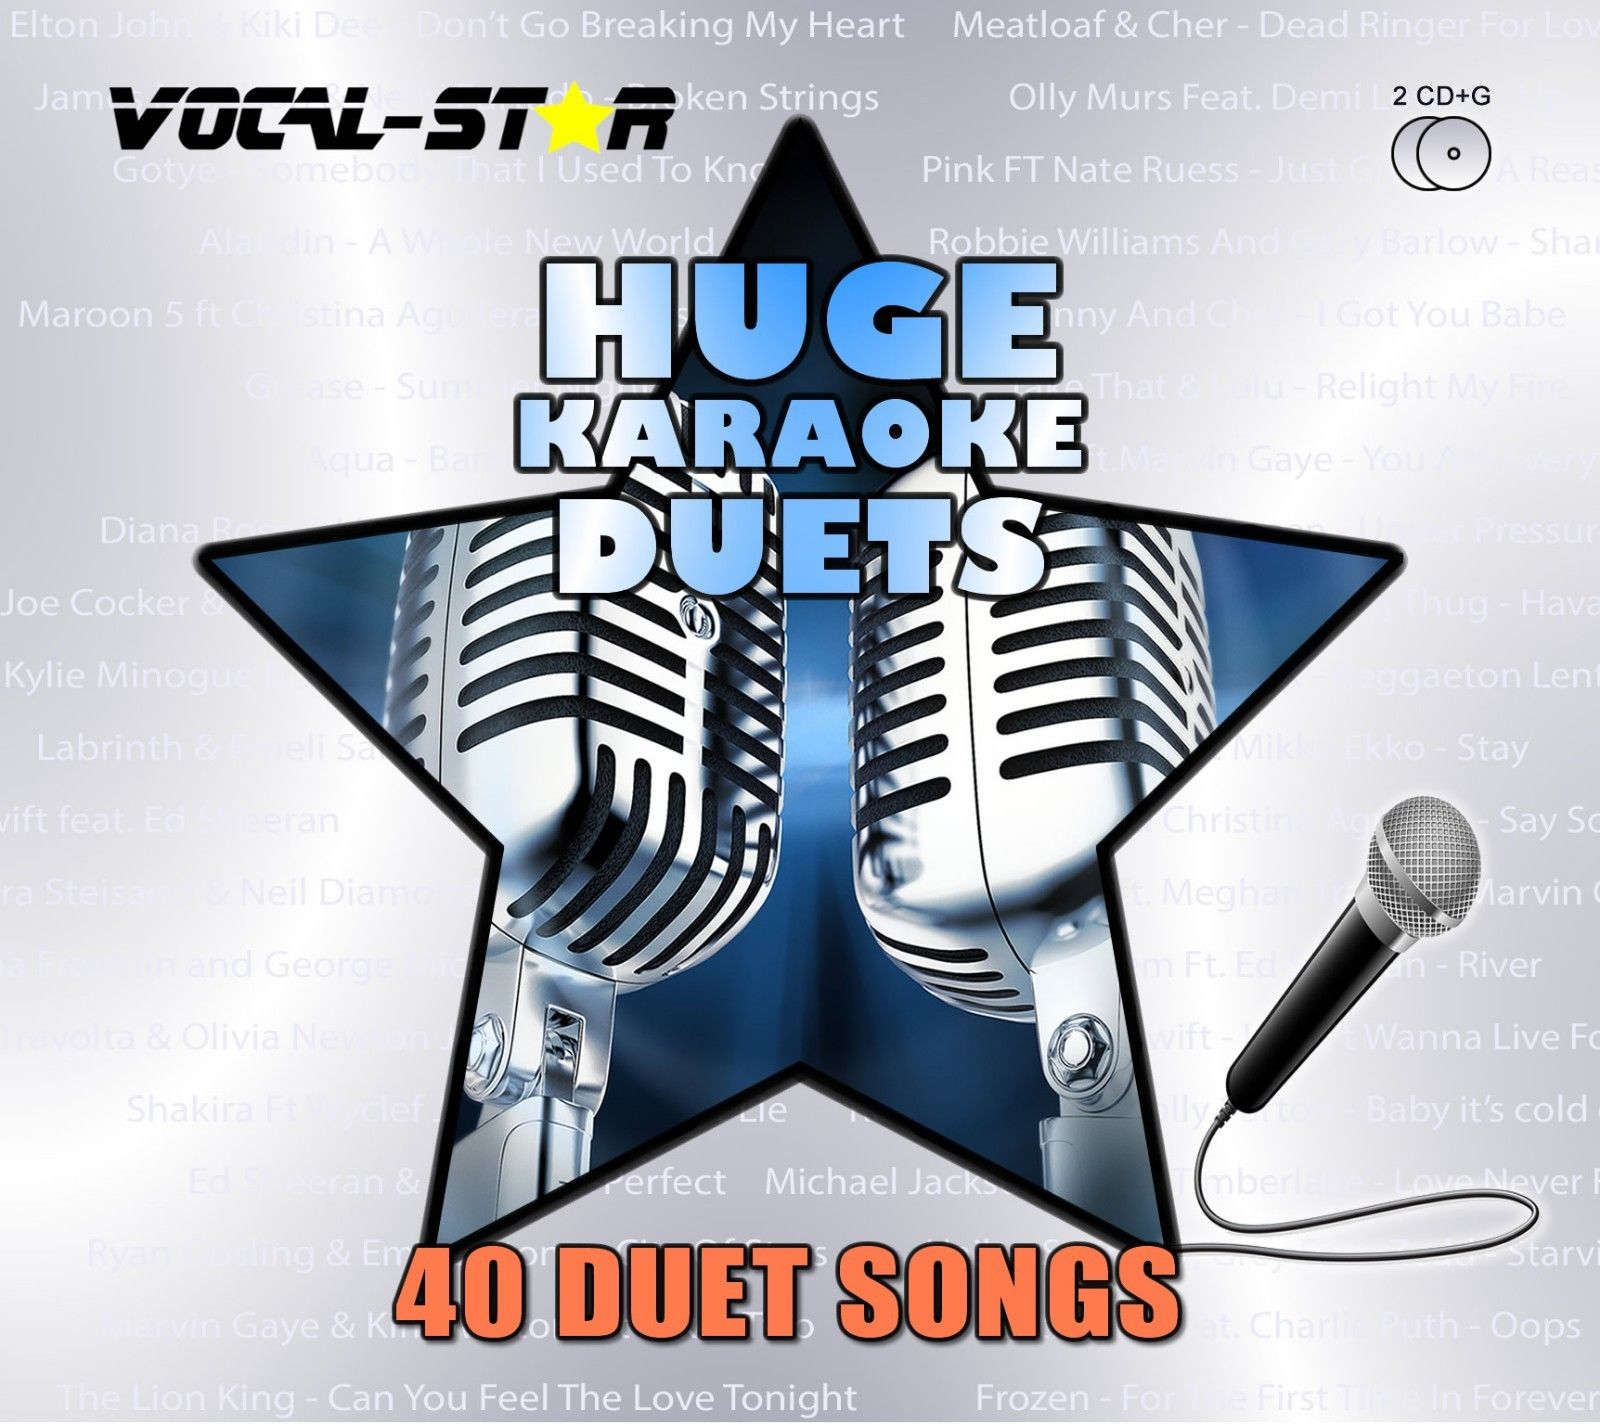 Vocal-Star Huge Karaoke Hits of Duets - 40 Songs - 2 CDG Disc Set